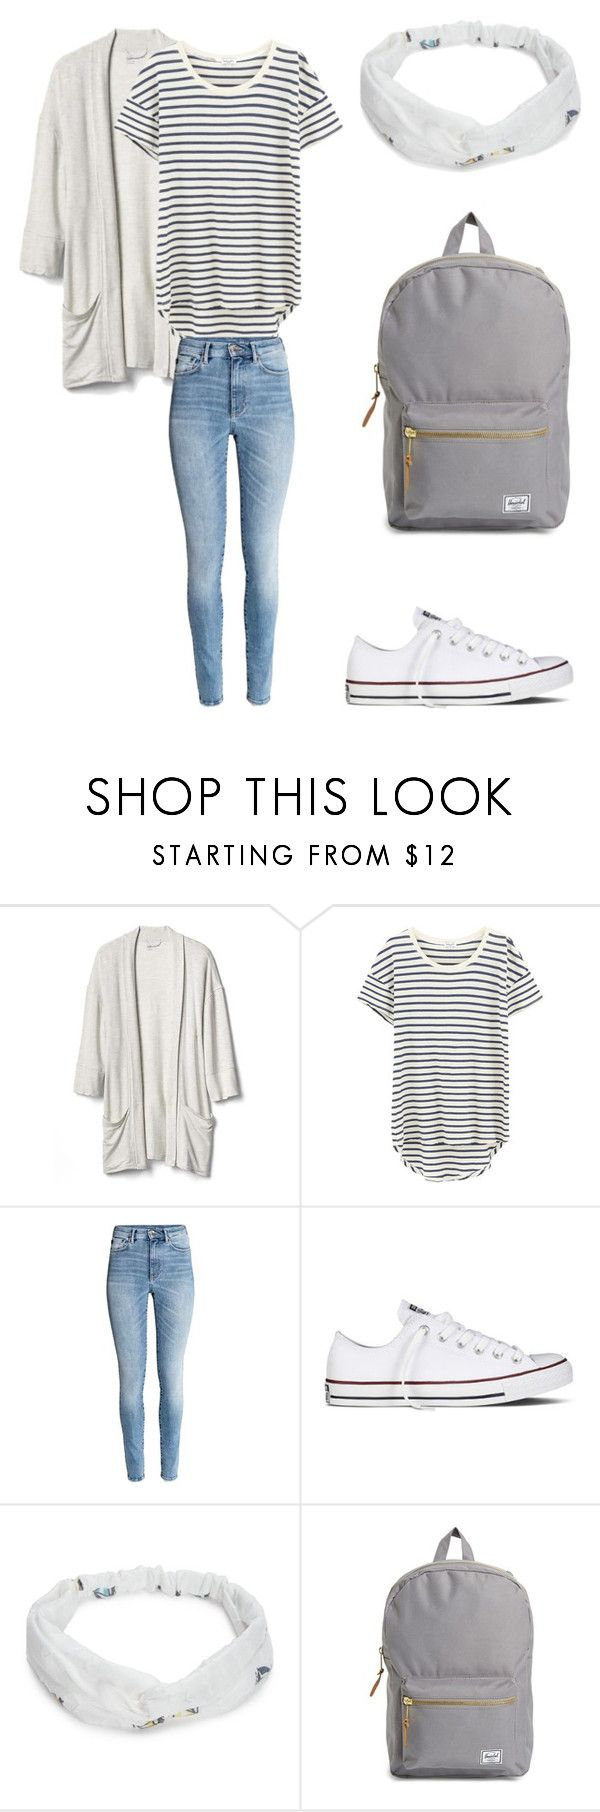 """""""Mottowoche First school day"""" by sarahfohlen ❤ liked on Polyvore featuring Gap, Splendid, Converse, Red Camel, Herschel Supply Co., Spring, 2k17 and mottowoche"""